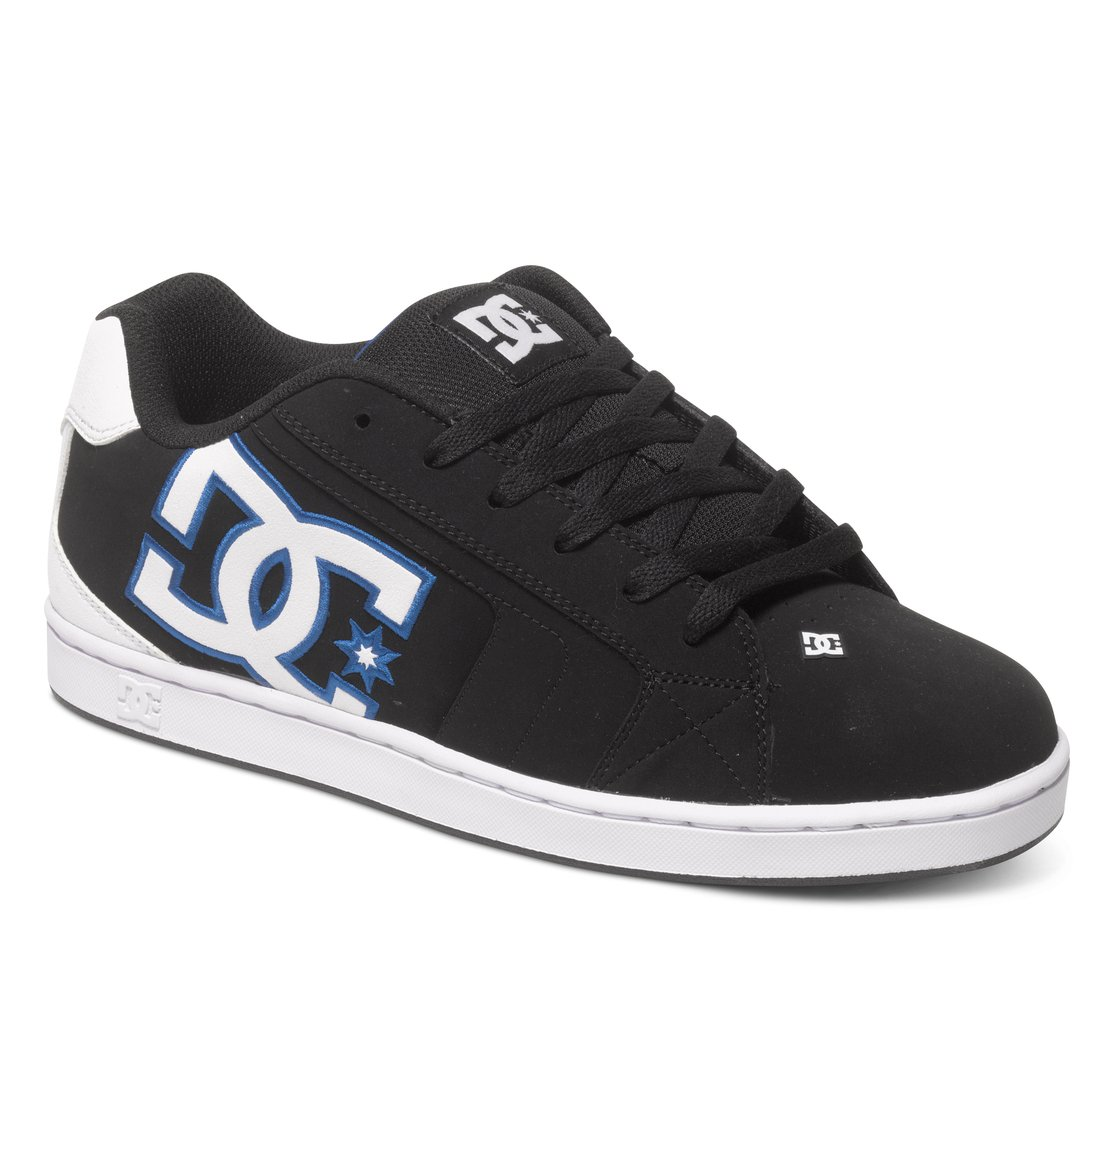 dc shoes net chaussures basses pour homme 302361 ebay. Black Bedroom Furniture Sets. Home Design Ideas